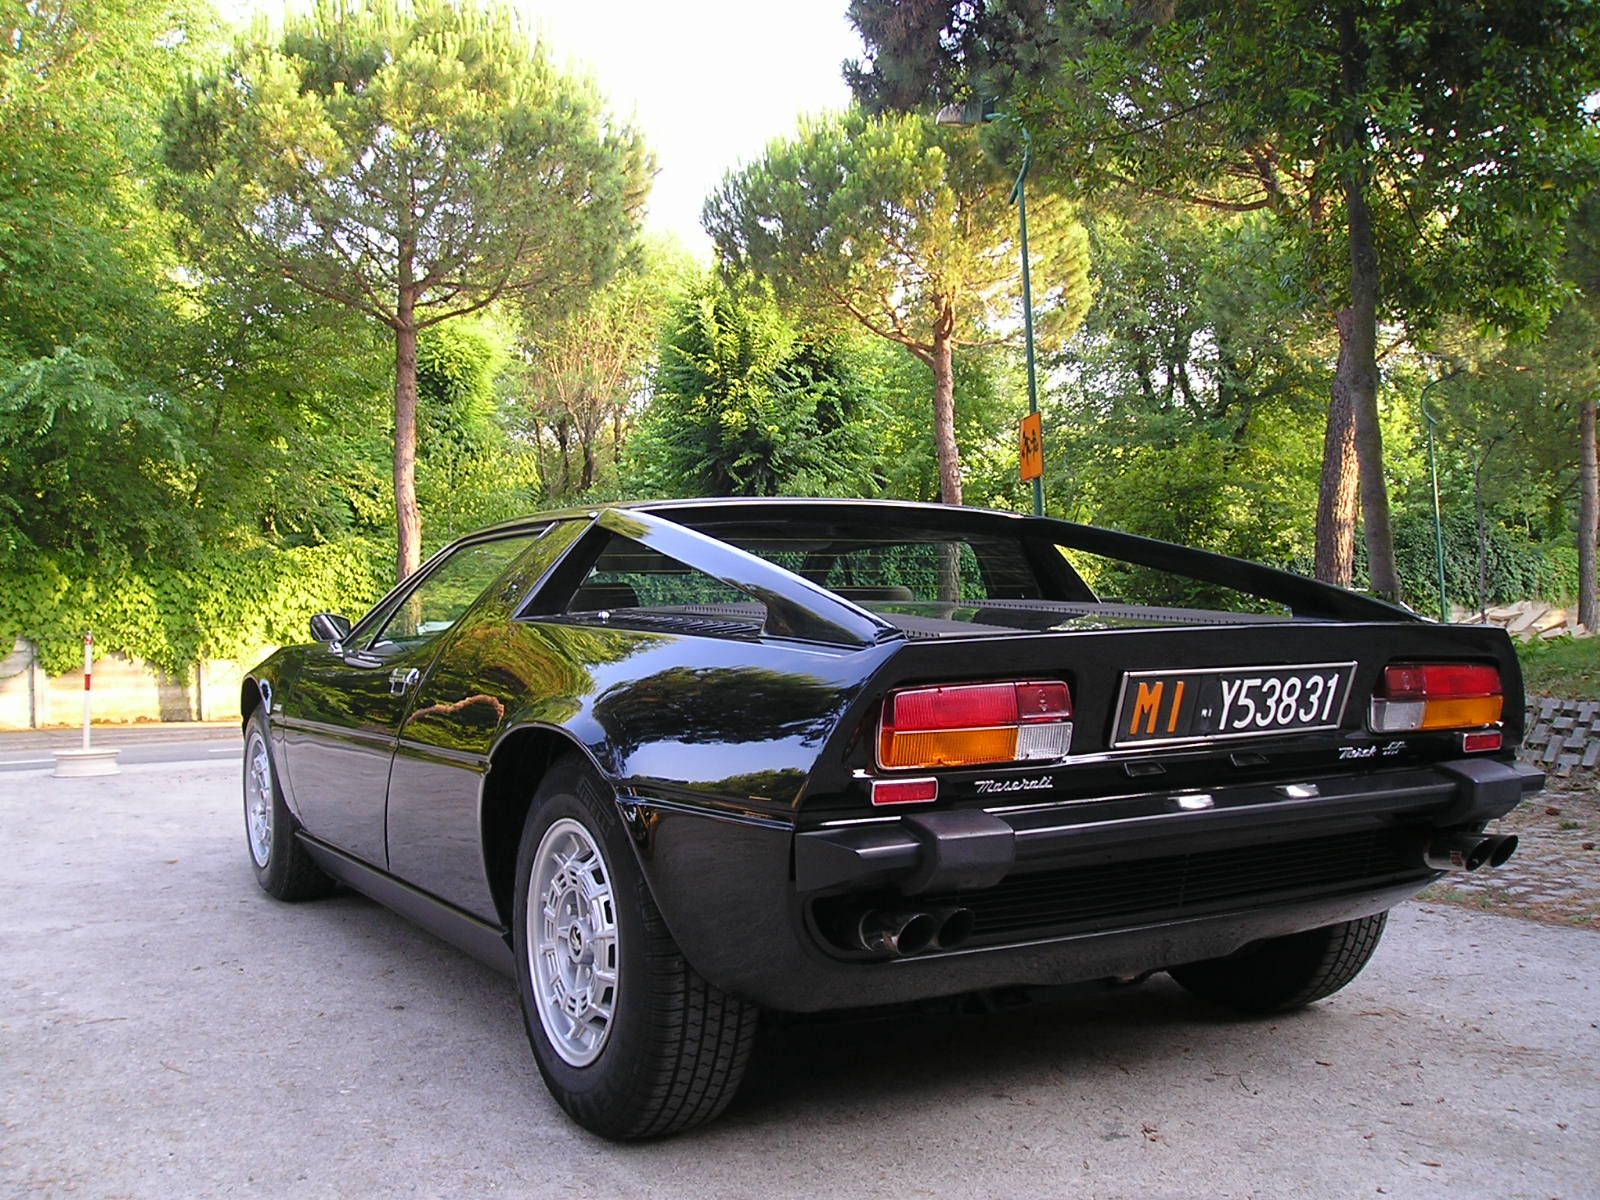 The Batman's Car of maserati Merak #2